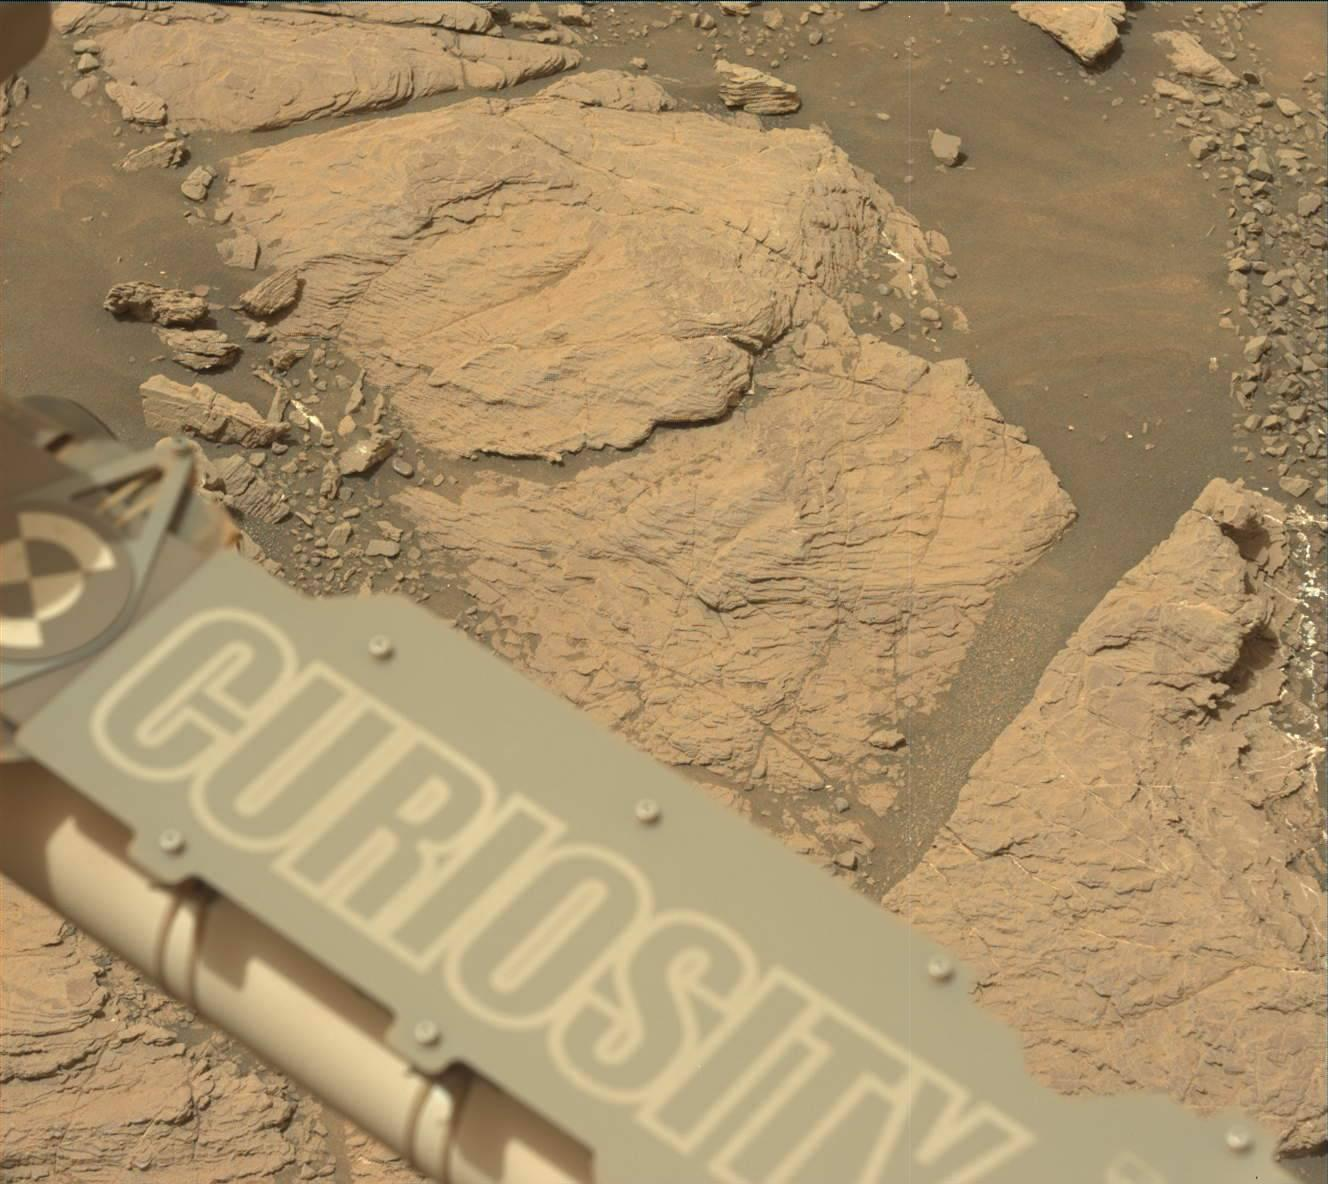 Space Images | Curiosity on the Clay Unit